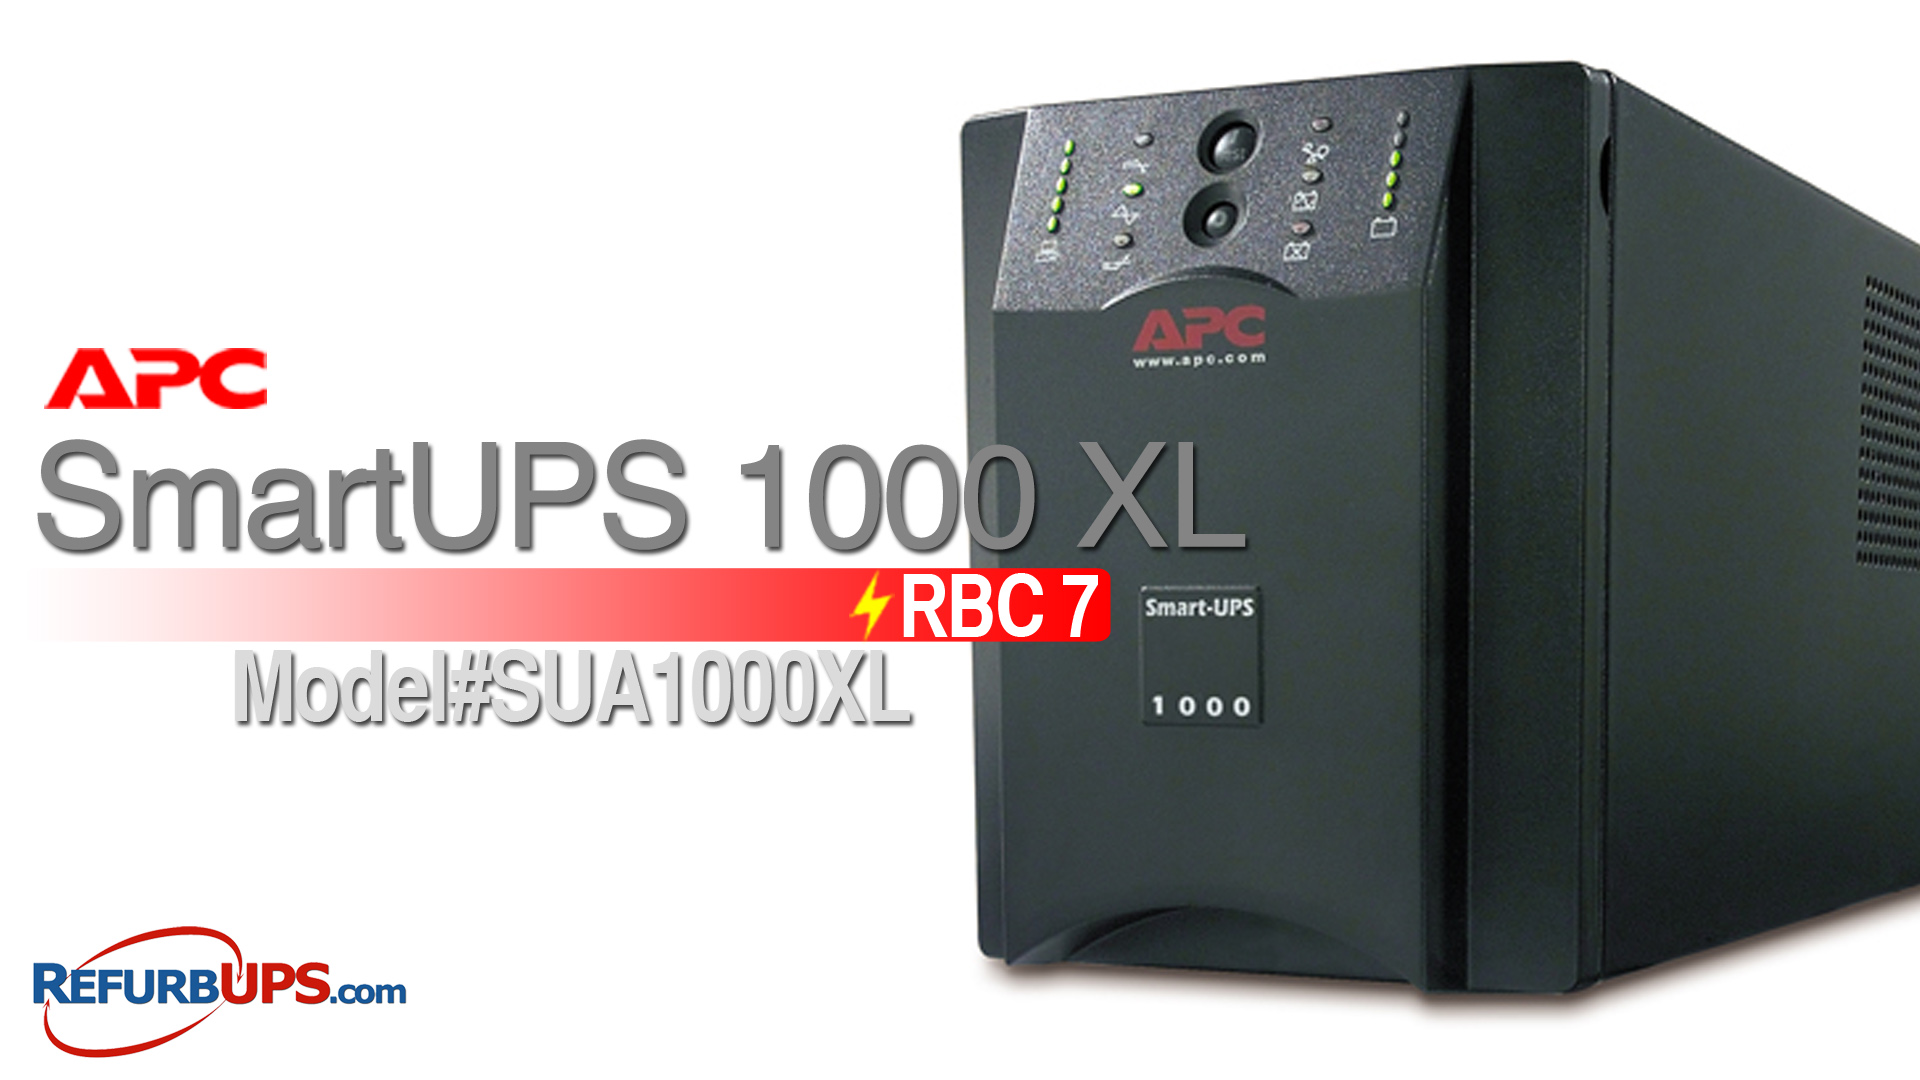 APC RBC  7 in APC SmartUPS 1000XL